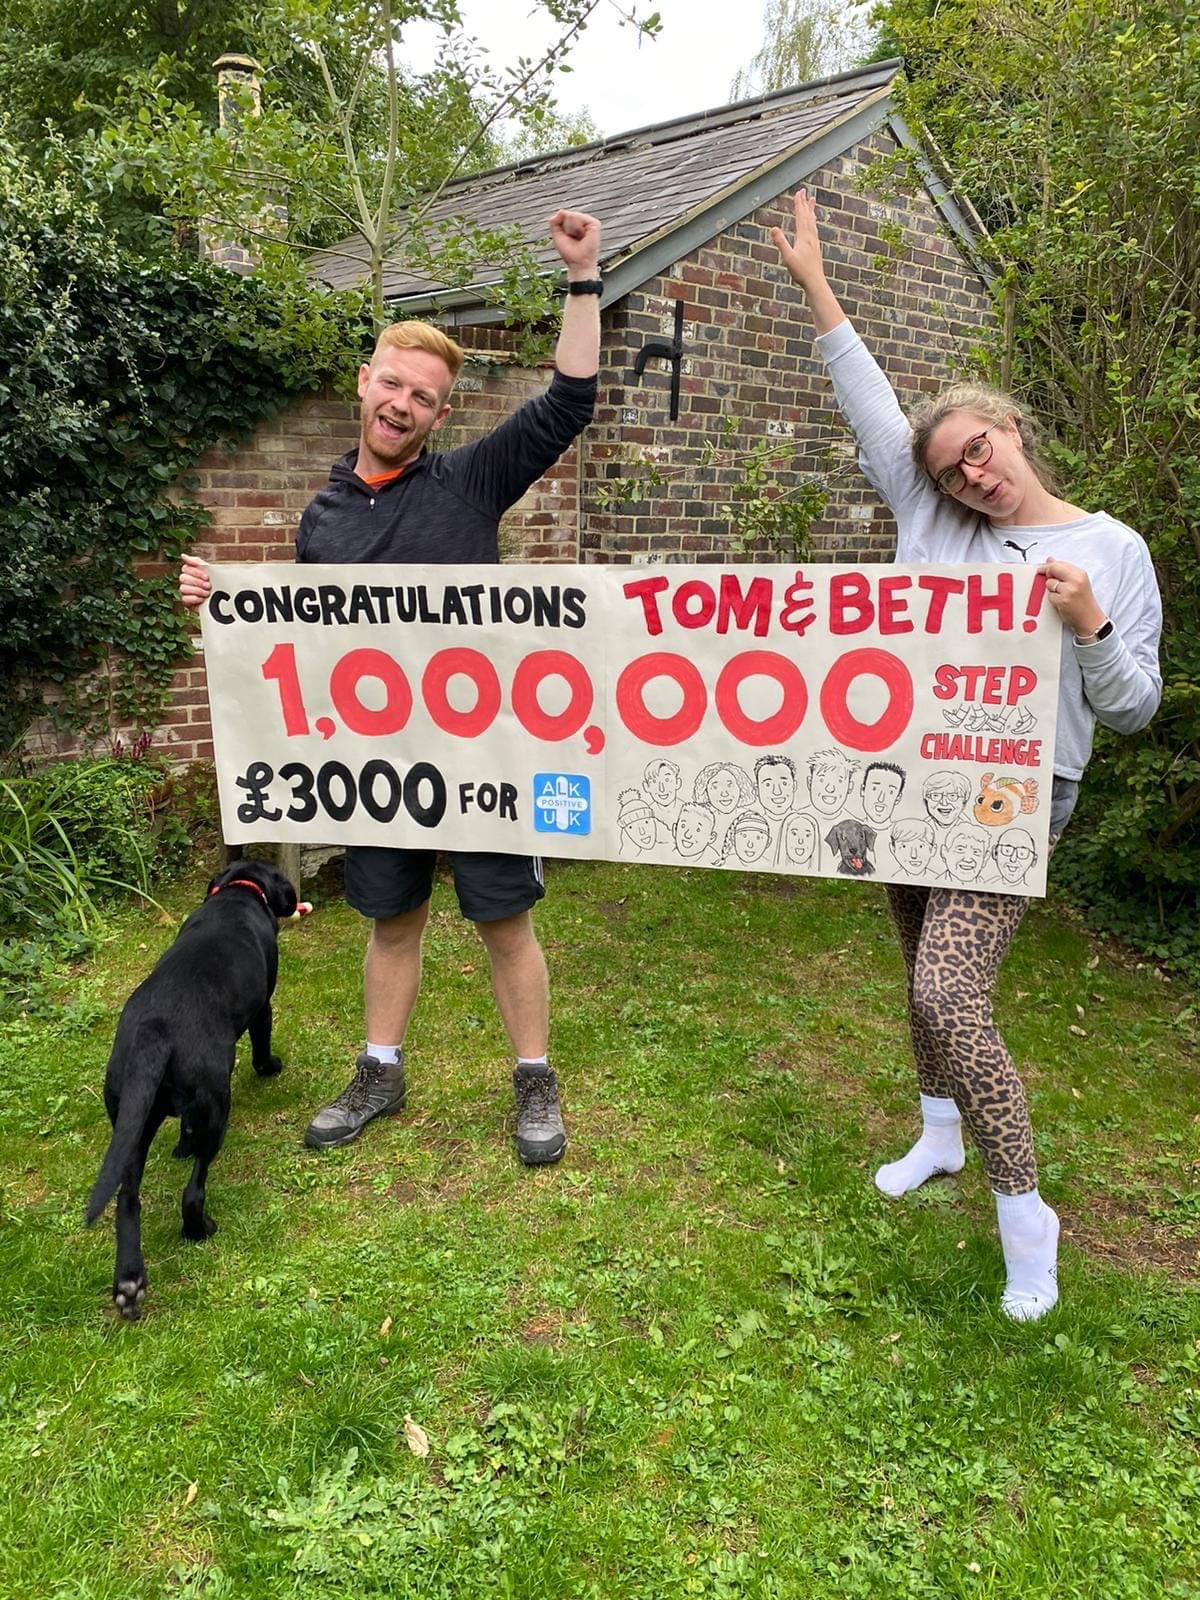 Tom & Beth - 1M steps